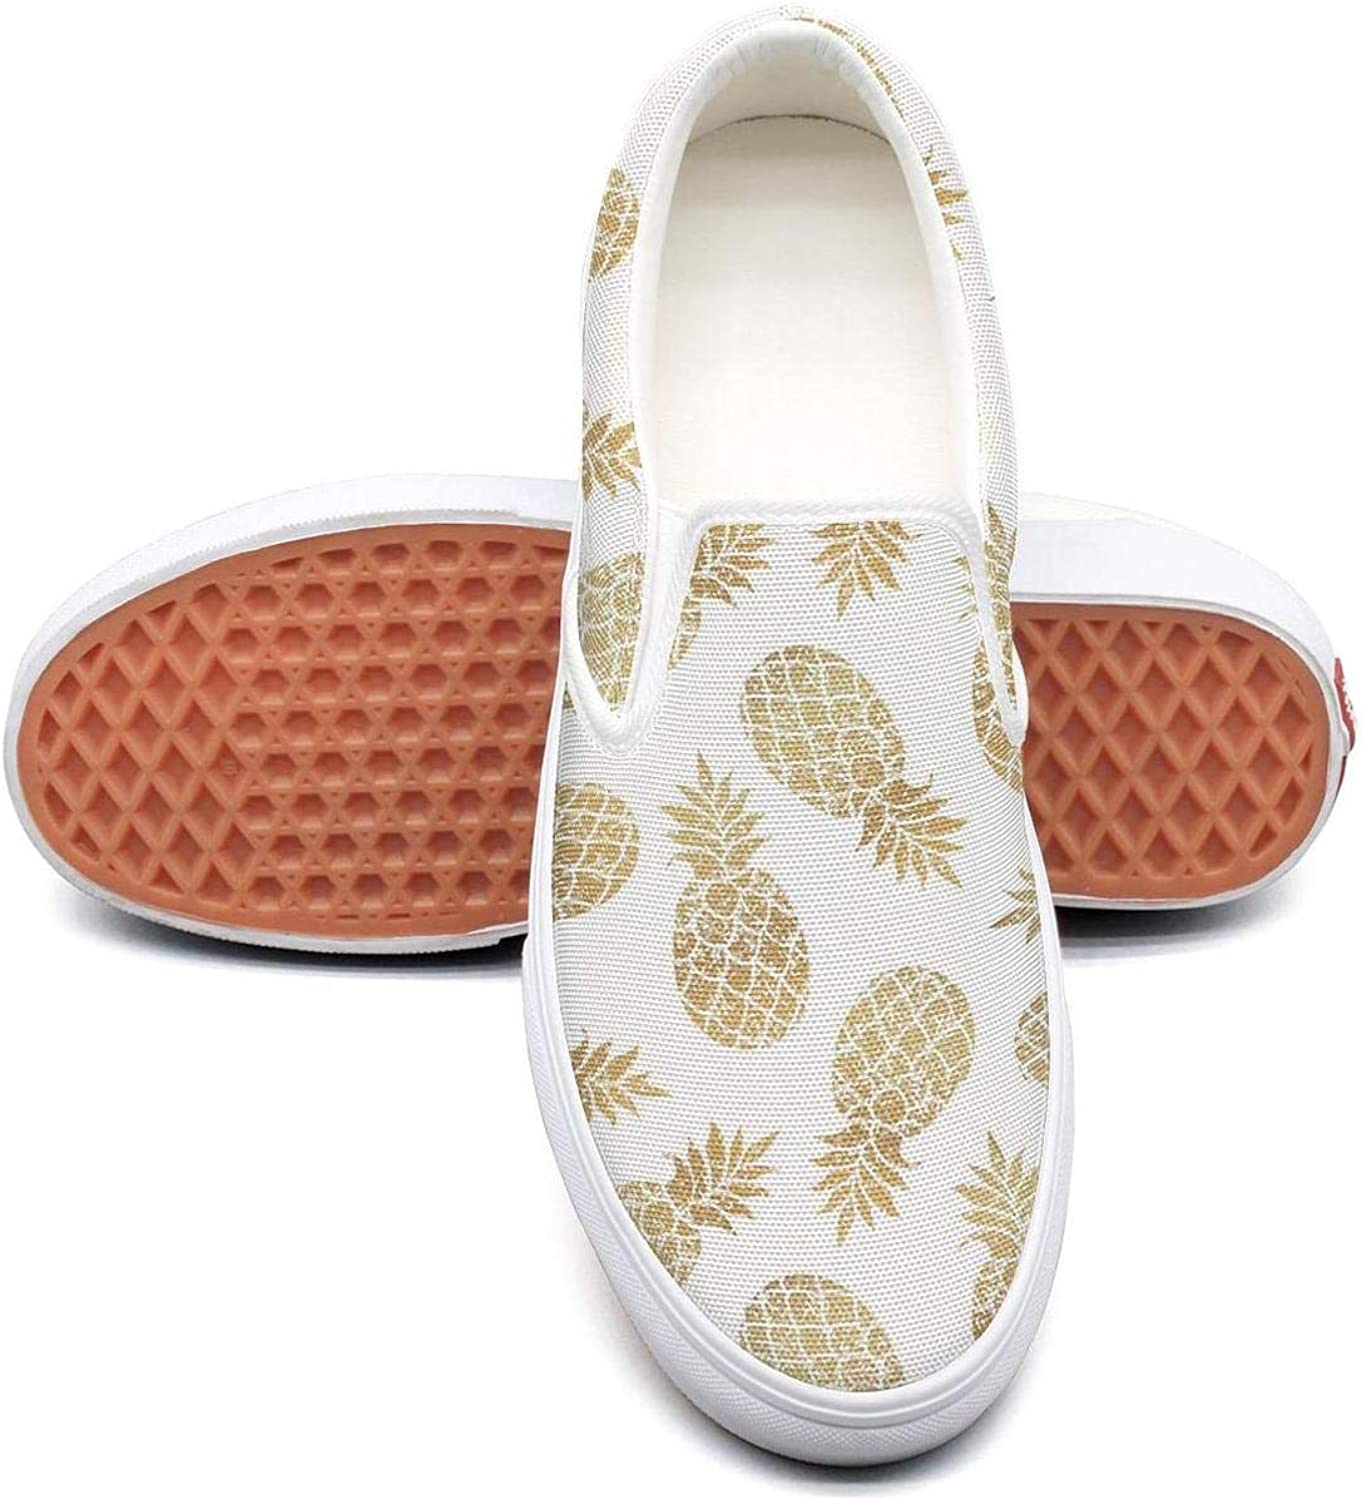 Refyds-es gold Pineapple Cartoon Pattern Womens Fashion Slip on Low Top Lightweight Canvas Sneakers shoes